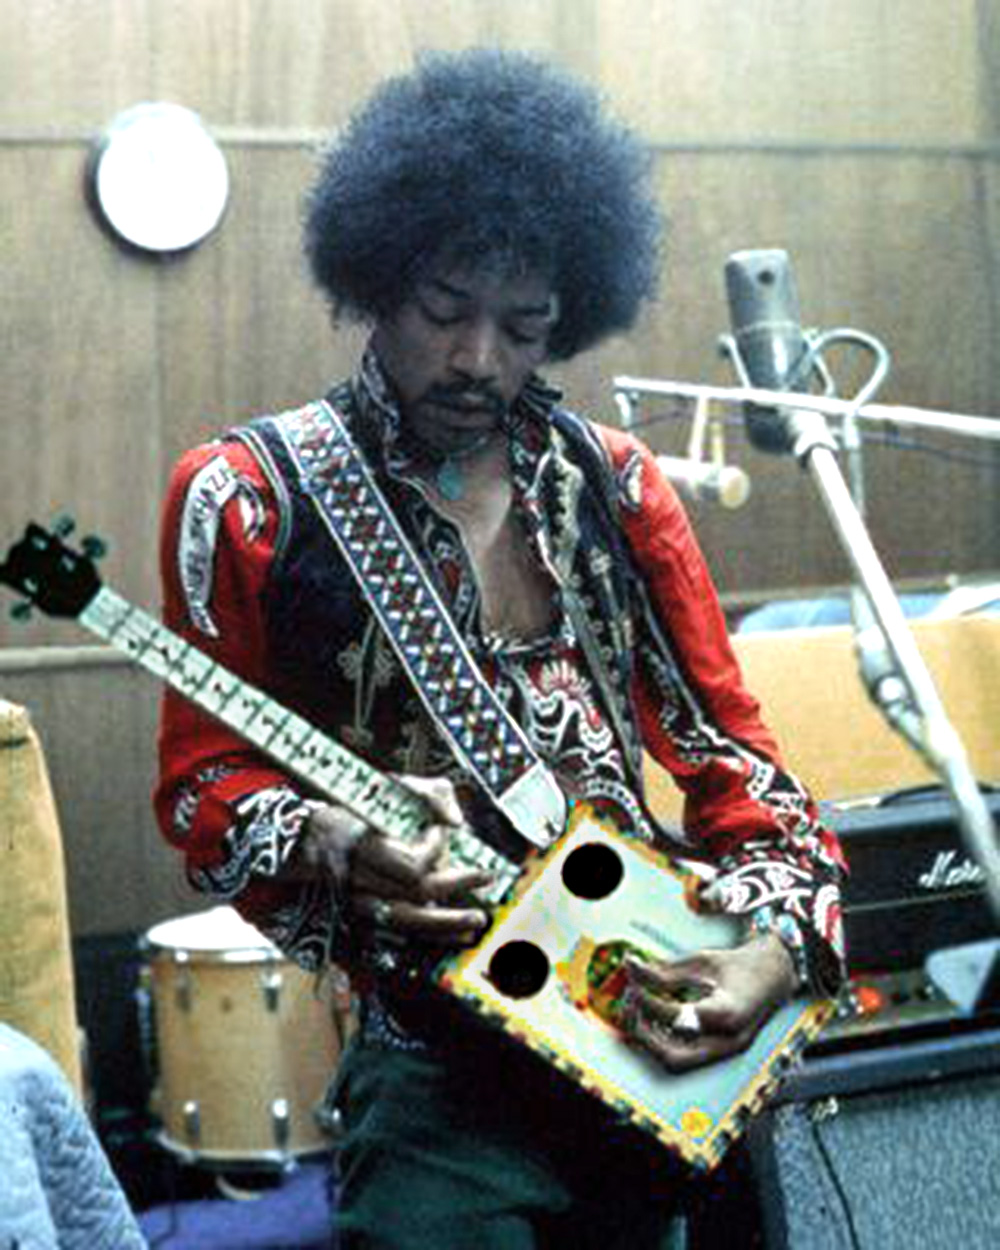 Jimi Hendrix Strat Wiring Diagram Simple Guide About Signature Fender Diagrams For Electric Guitars Get Free